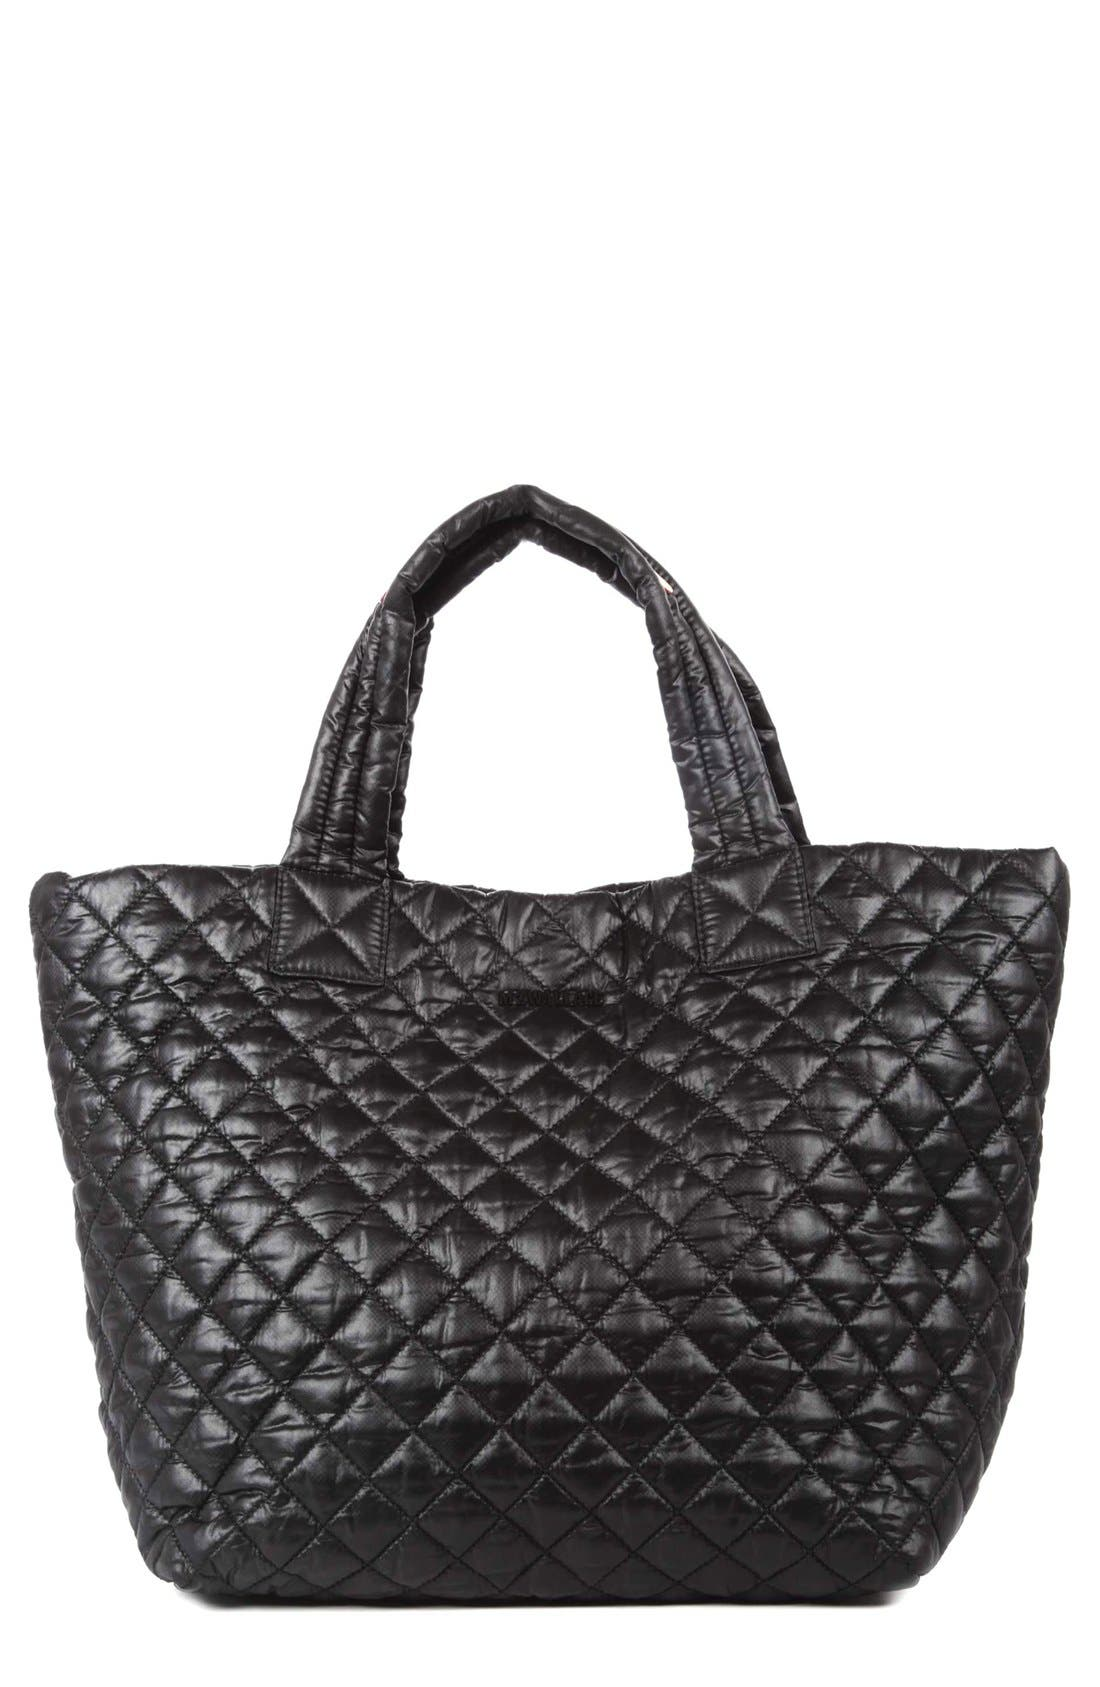 MZ WALLACE Small Metro Quilted Oxford Nylon Tote